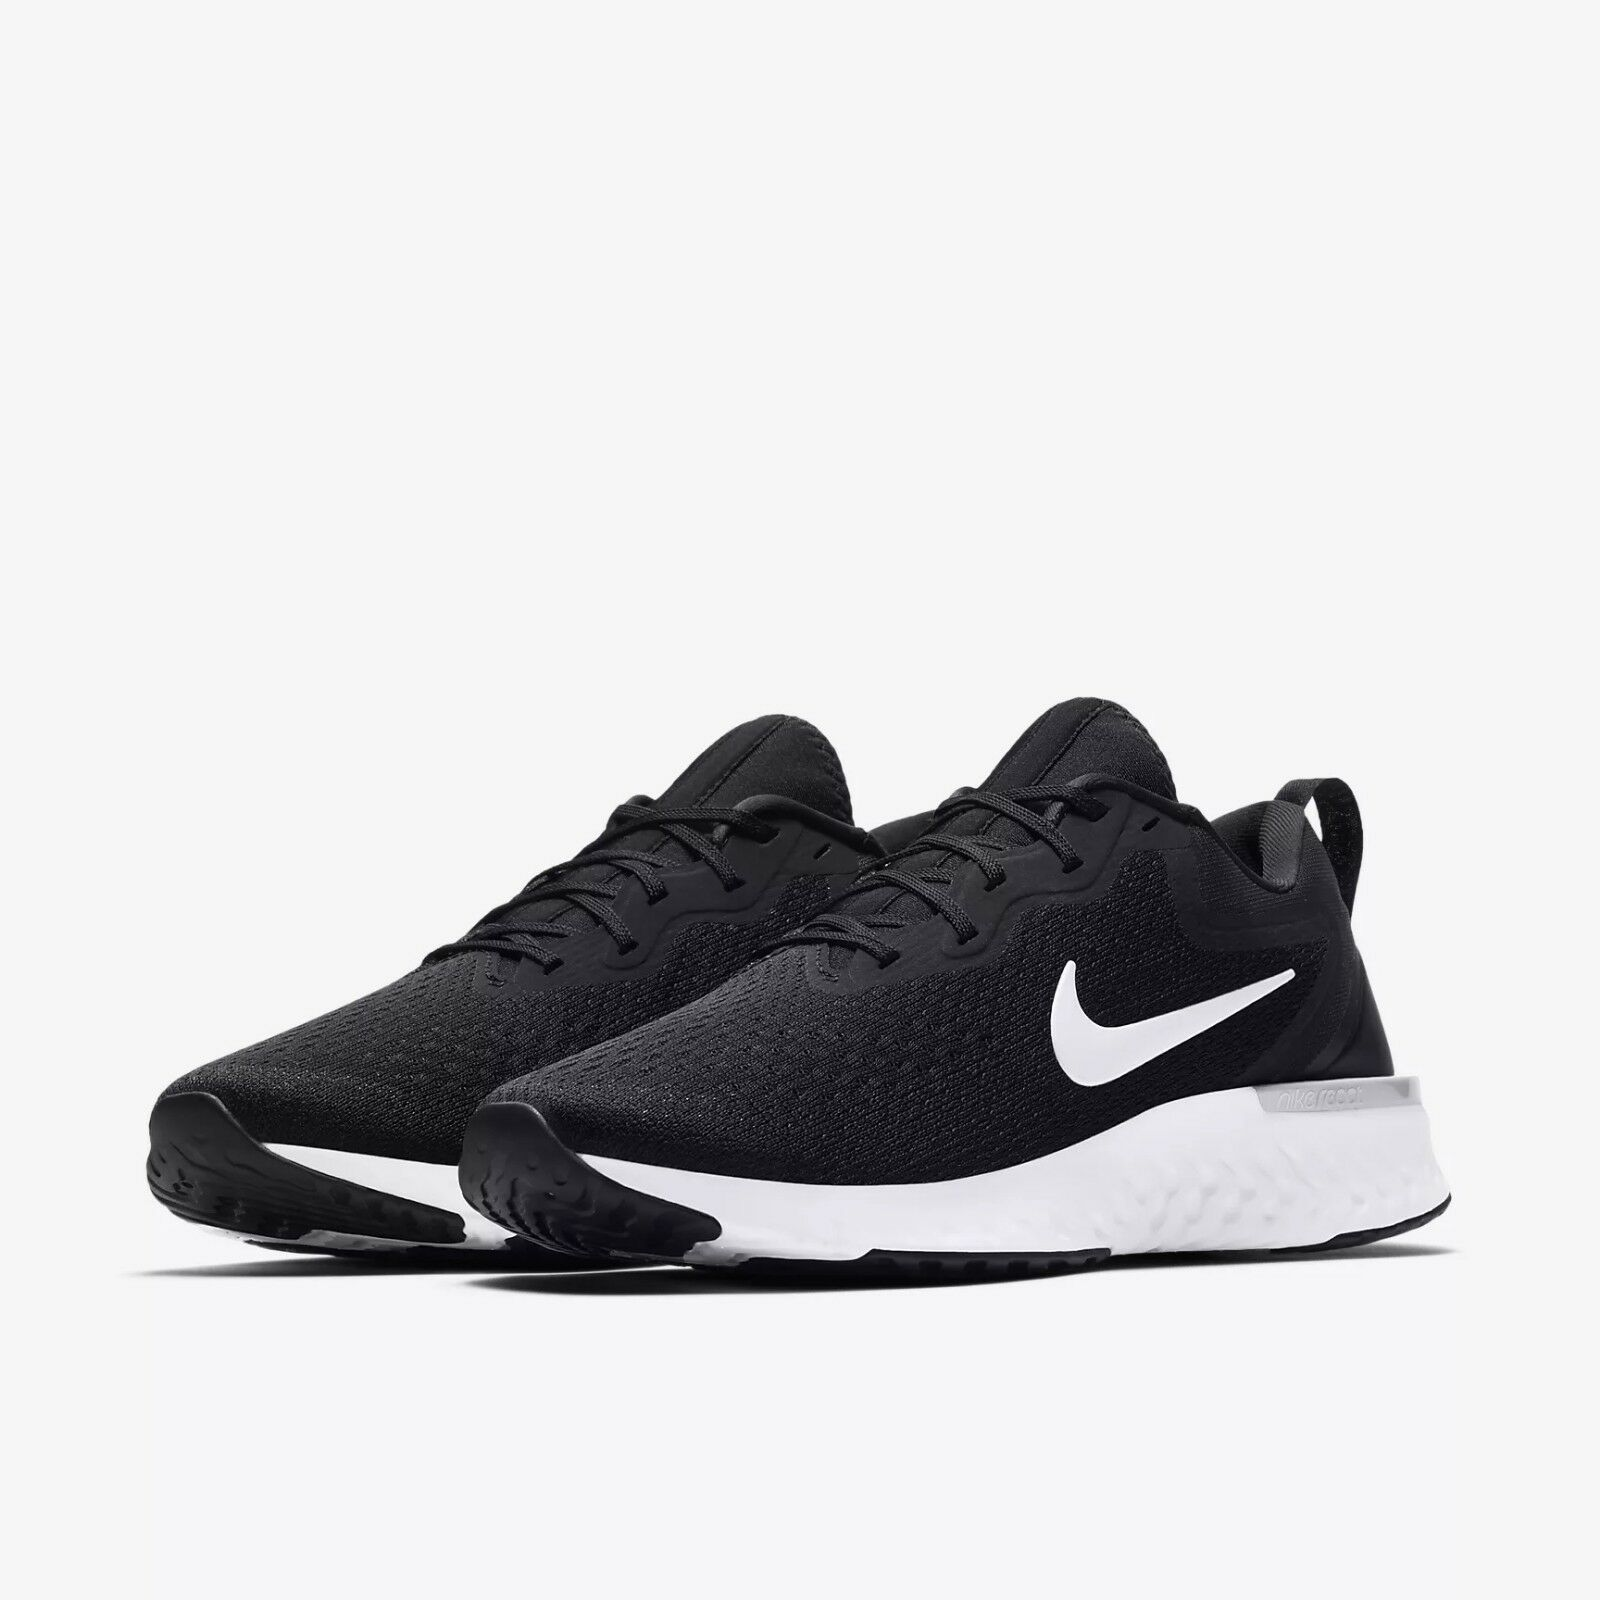 AO9819-001 Men's Nike React Odyssey Running Black Grey-White Szs 8-13 NIB